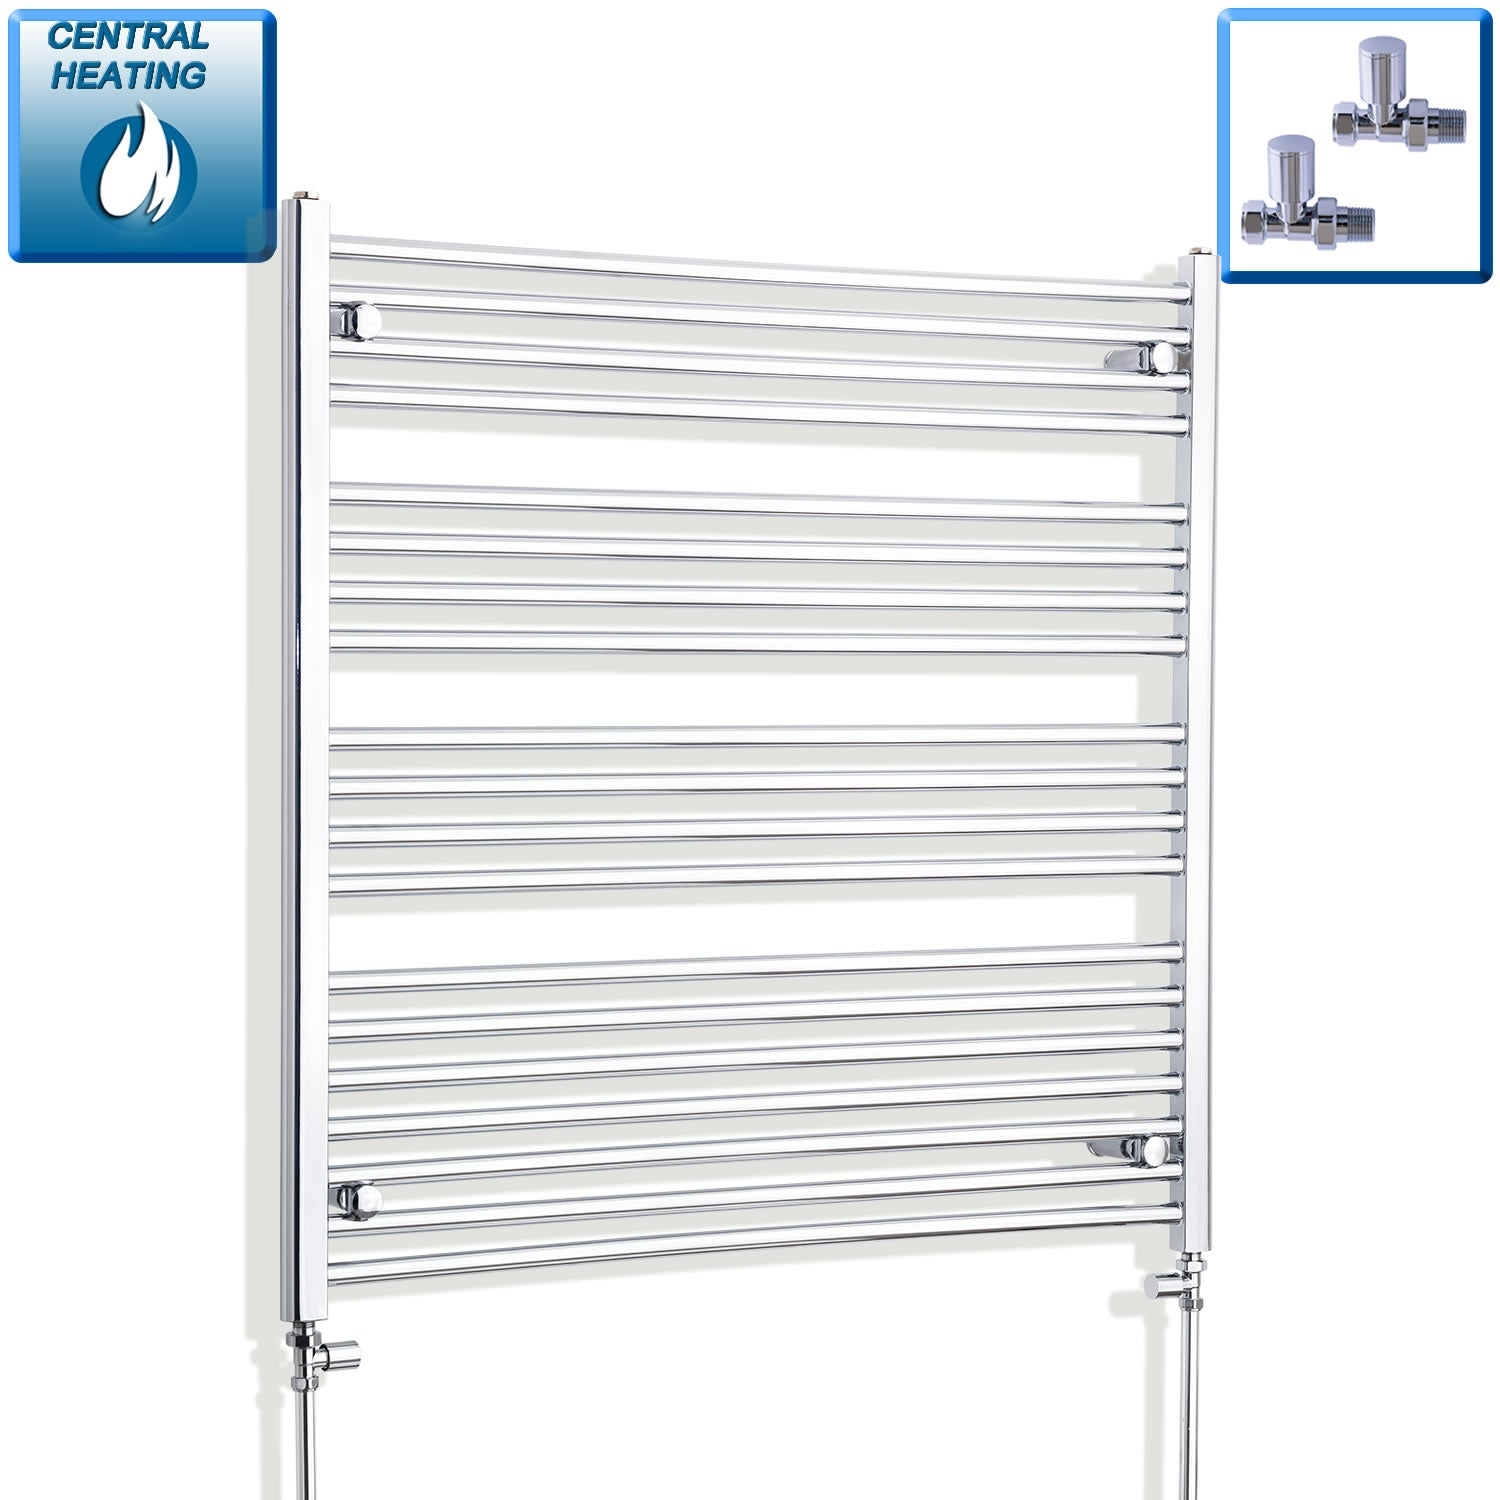 1100mm Wide 1000mm High Flat Chrome Heated Towel Rail Radiator HTR,With Straight Valve